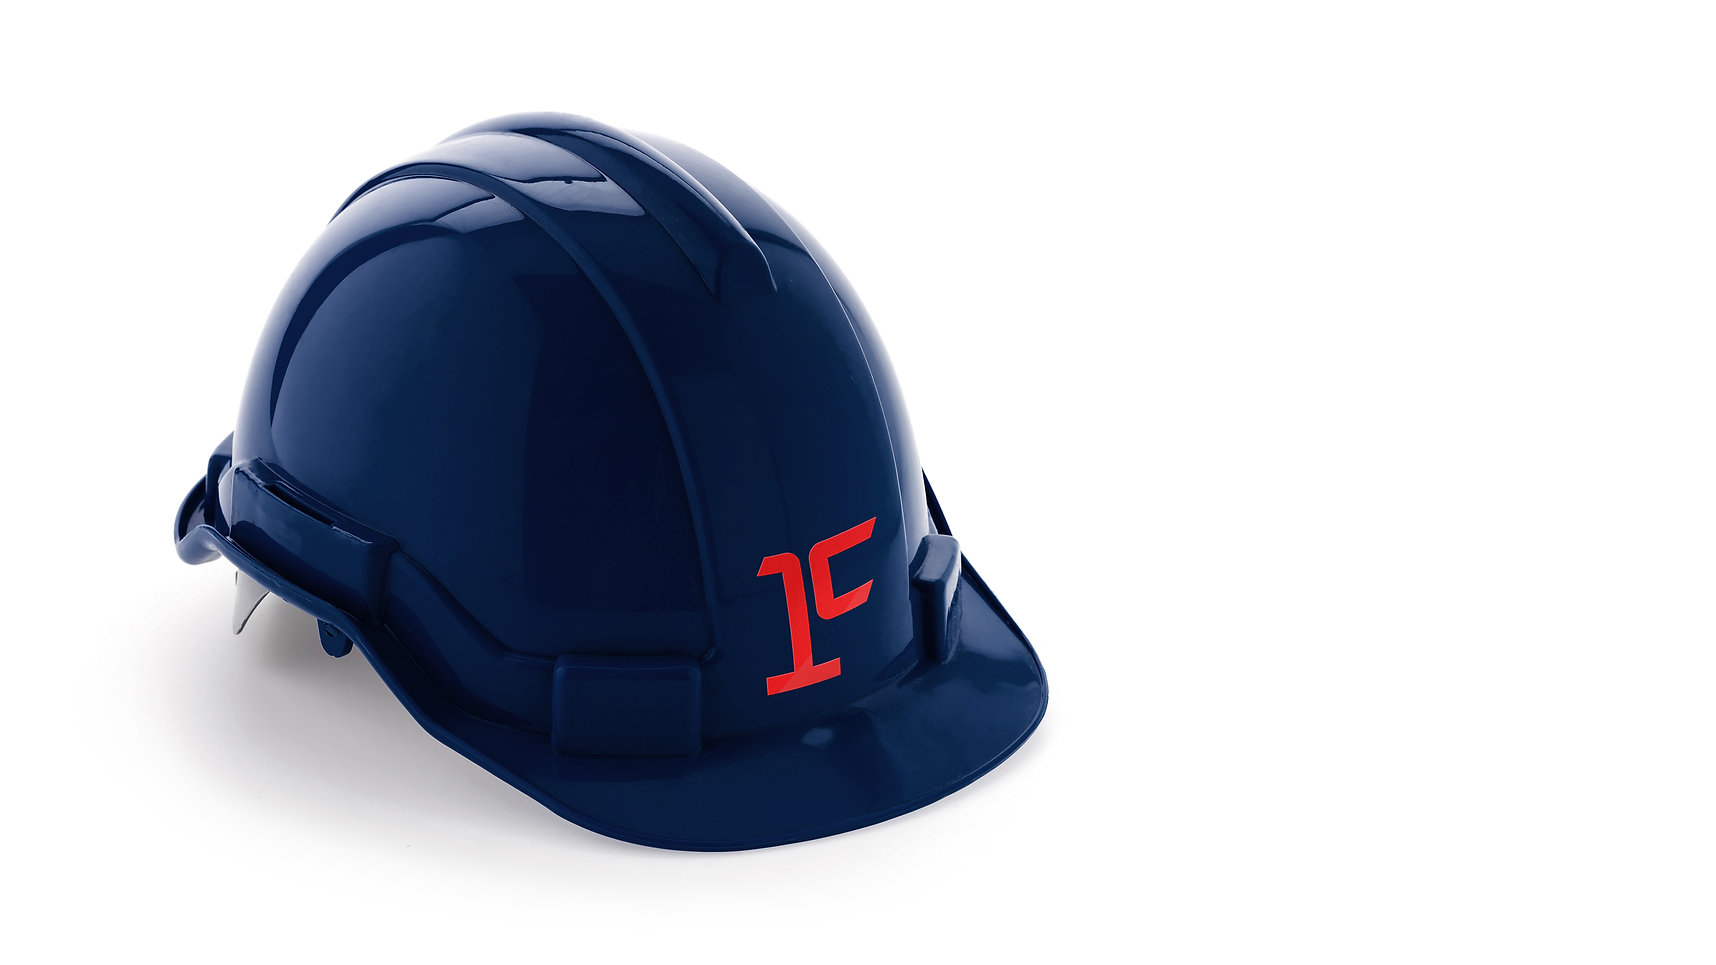 ∆_2019_Credential_First_Capital_Helmet.j